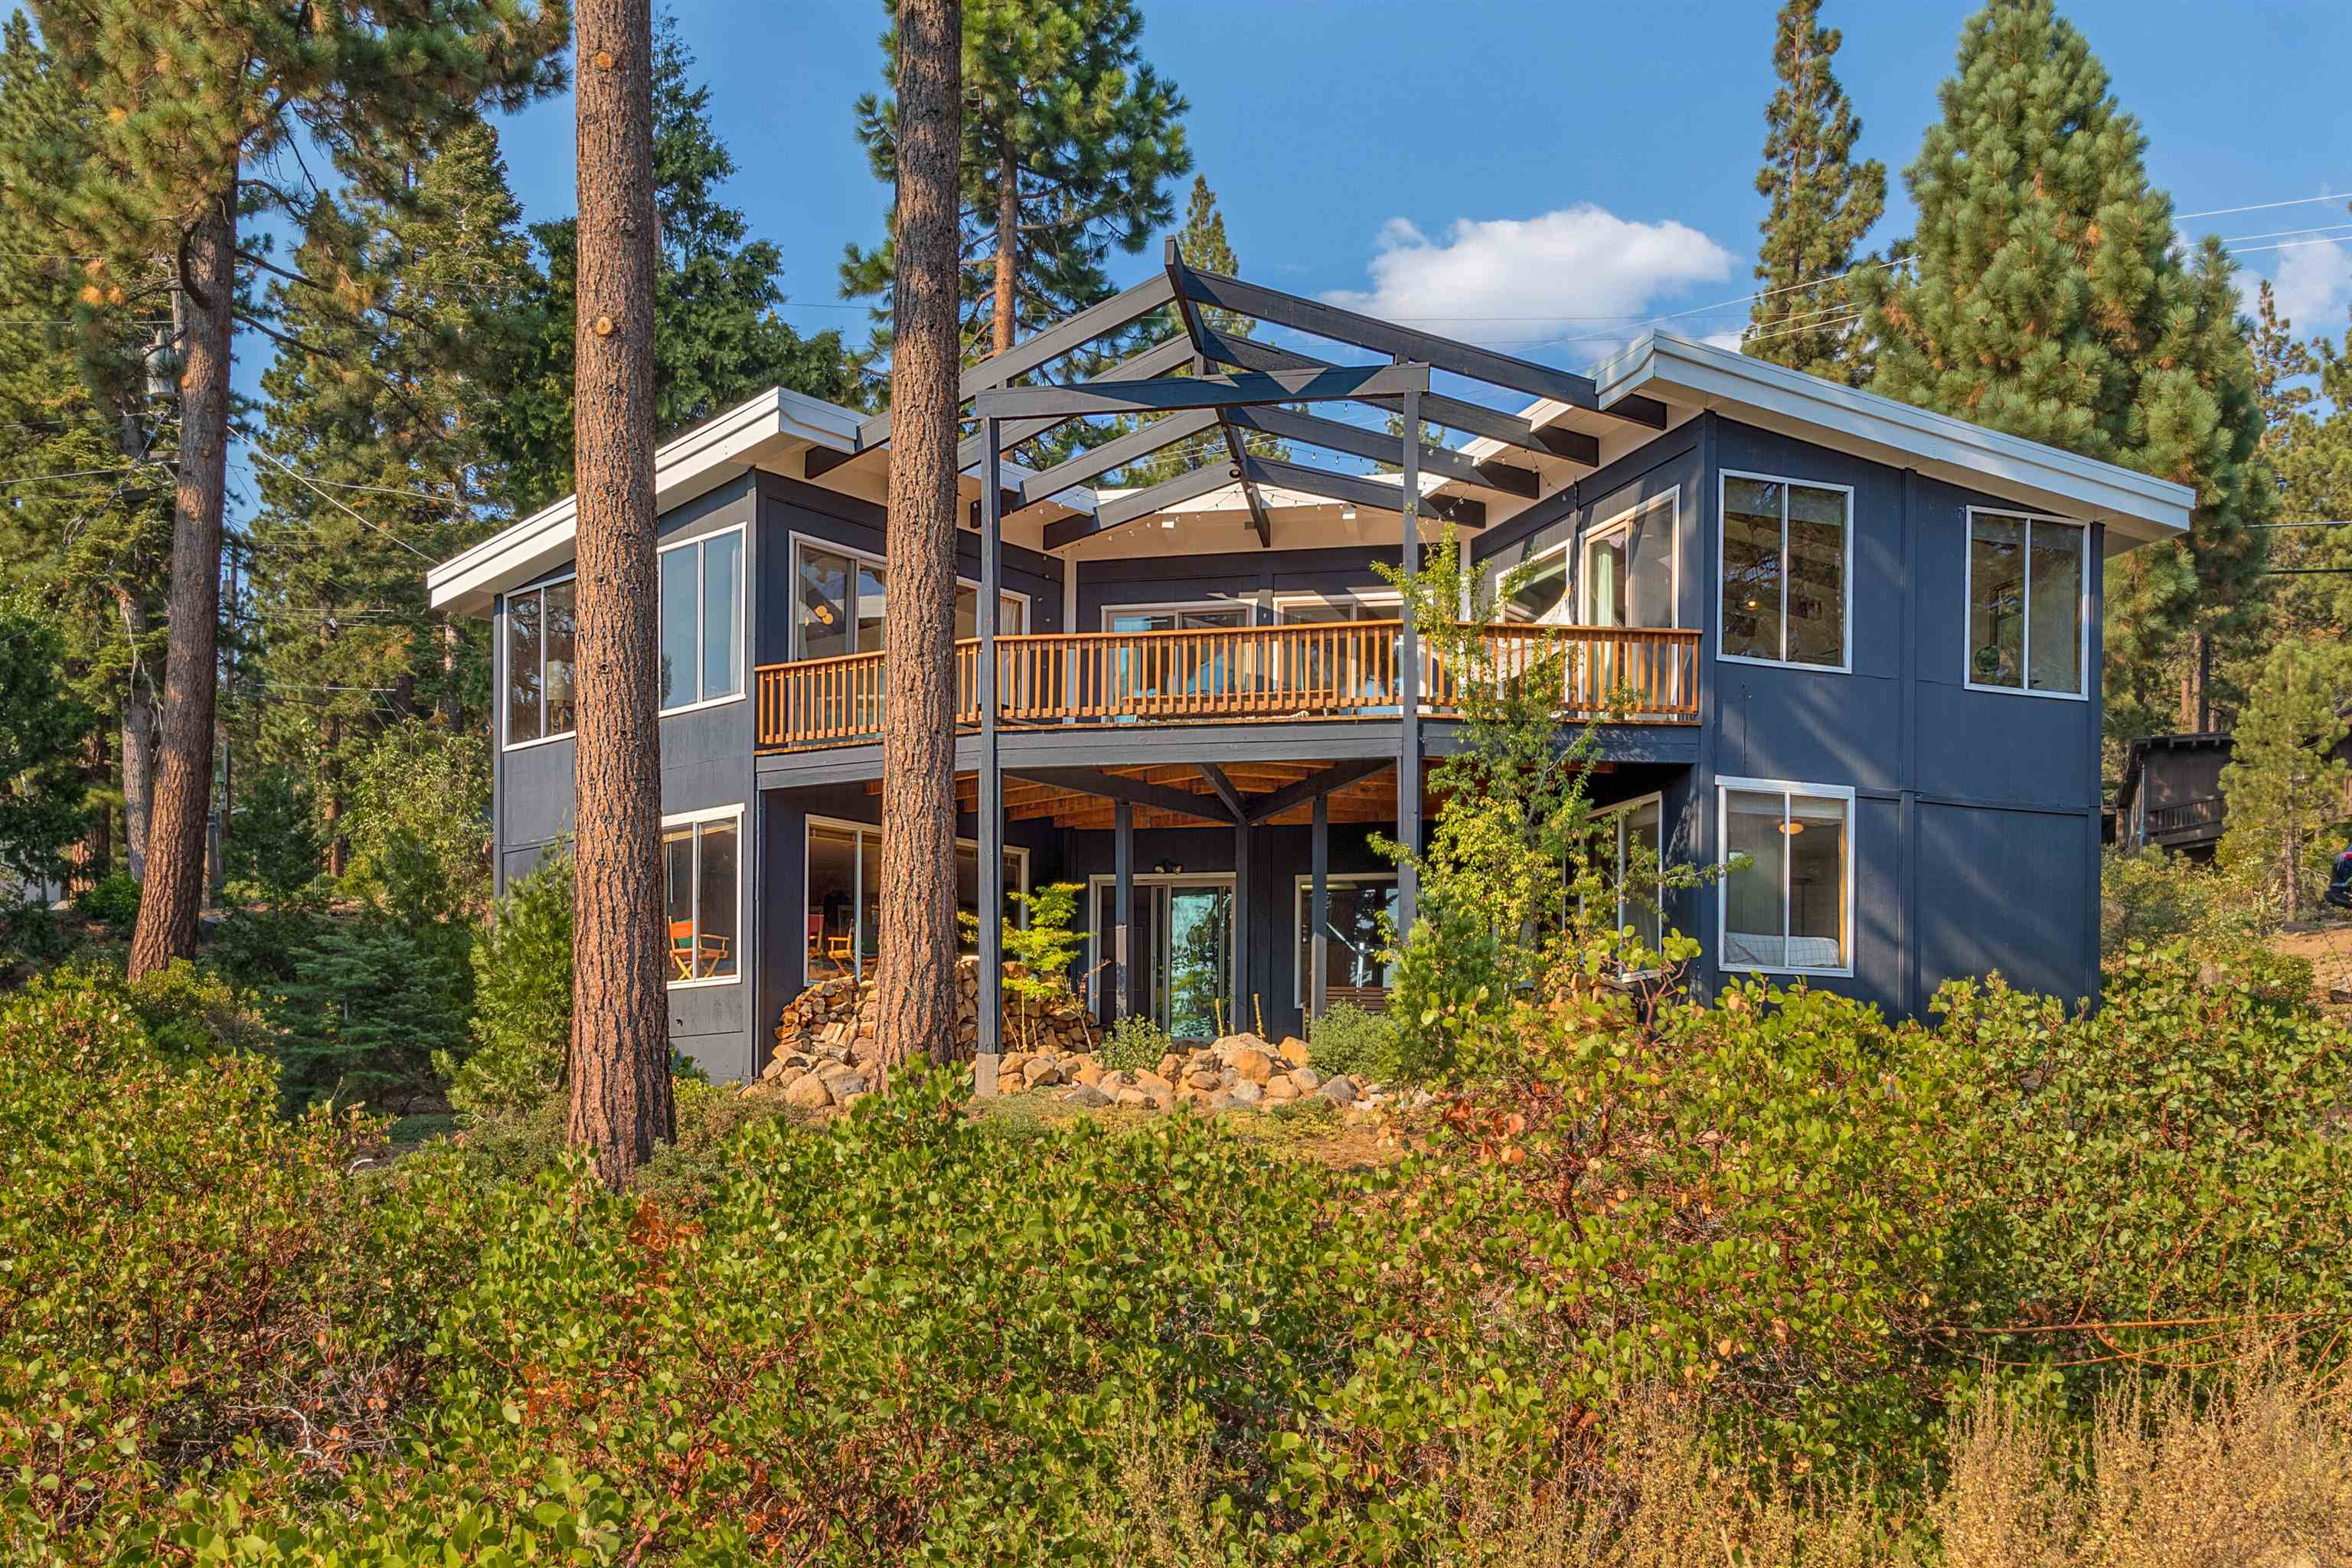 Image for 81 Observation Drive, Tahoe City, CA 96145